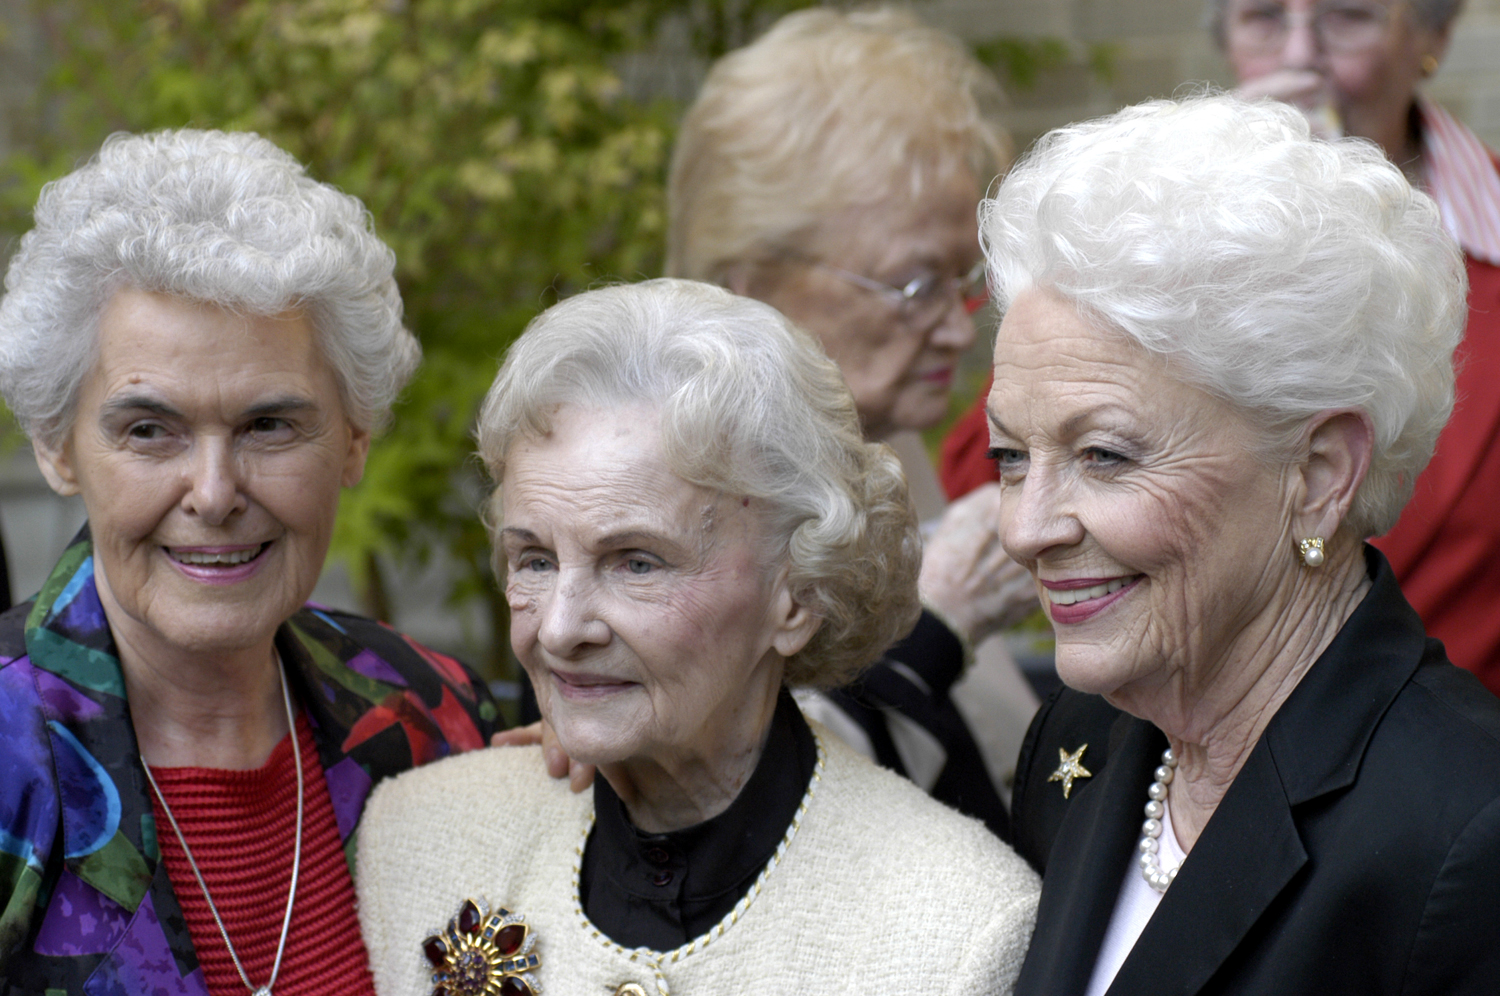 Louise Raggio with Vivian Castleberry and Texas Governor Ann Richards in 2003 at SMU